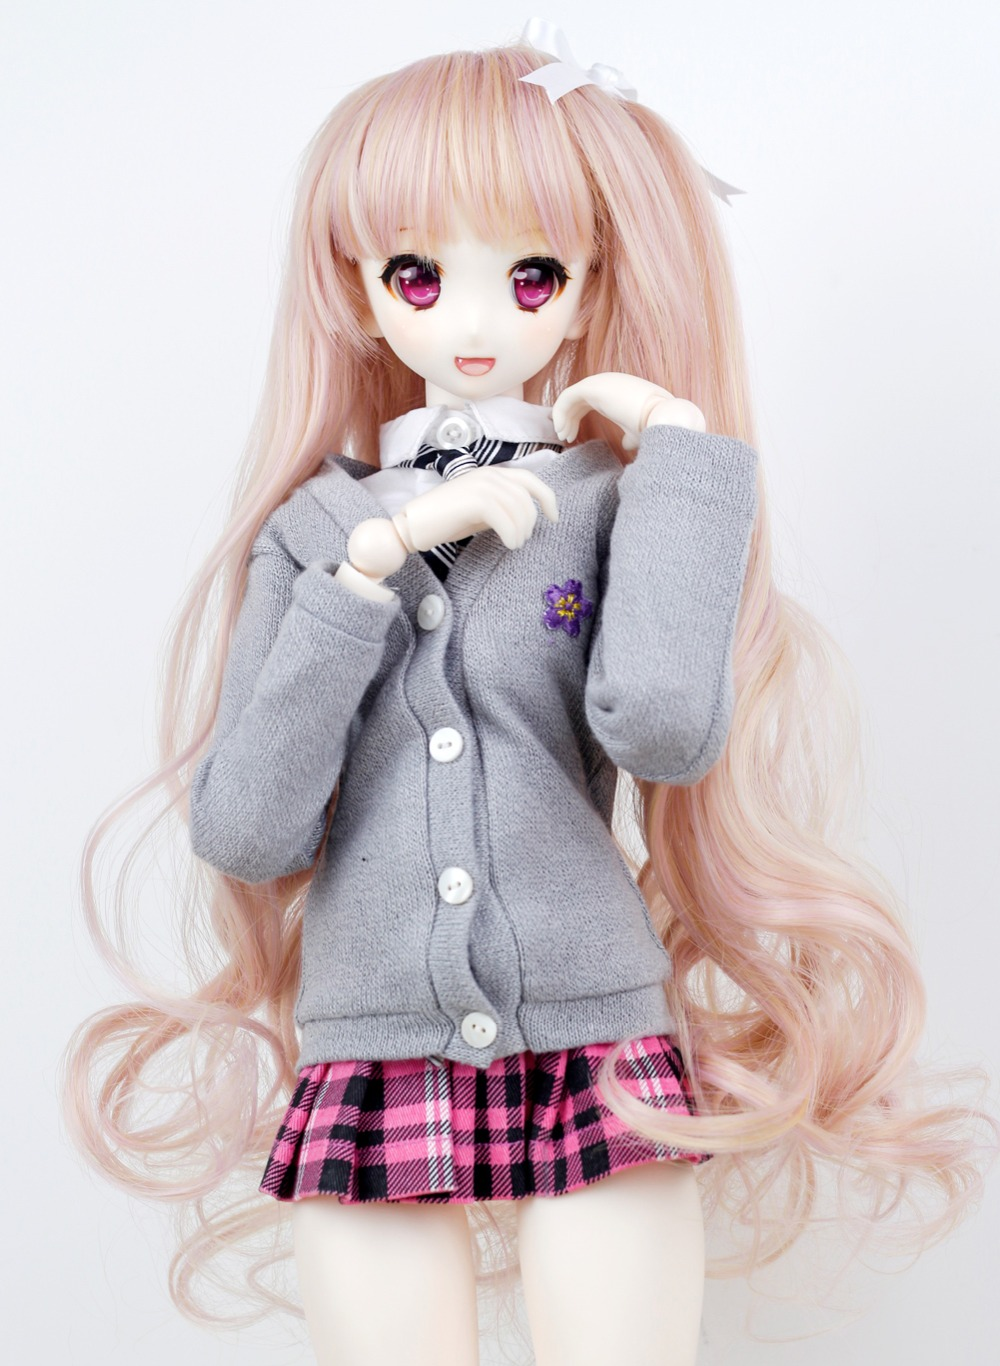 Bjd Doll Wig 1//3 8-9 SD Pullip Bylthe Dollfie Long Pink Toy Head Hair 22-24cm